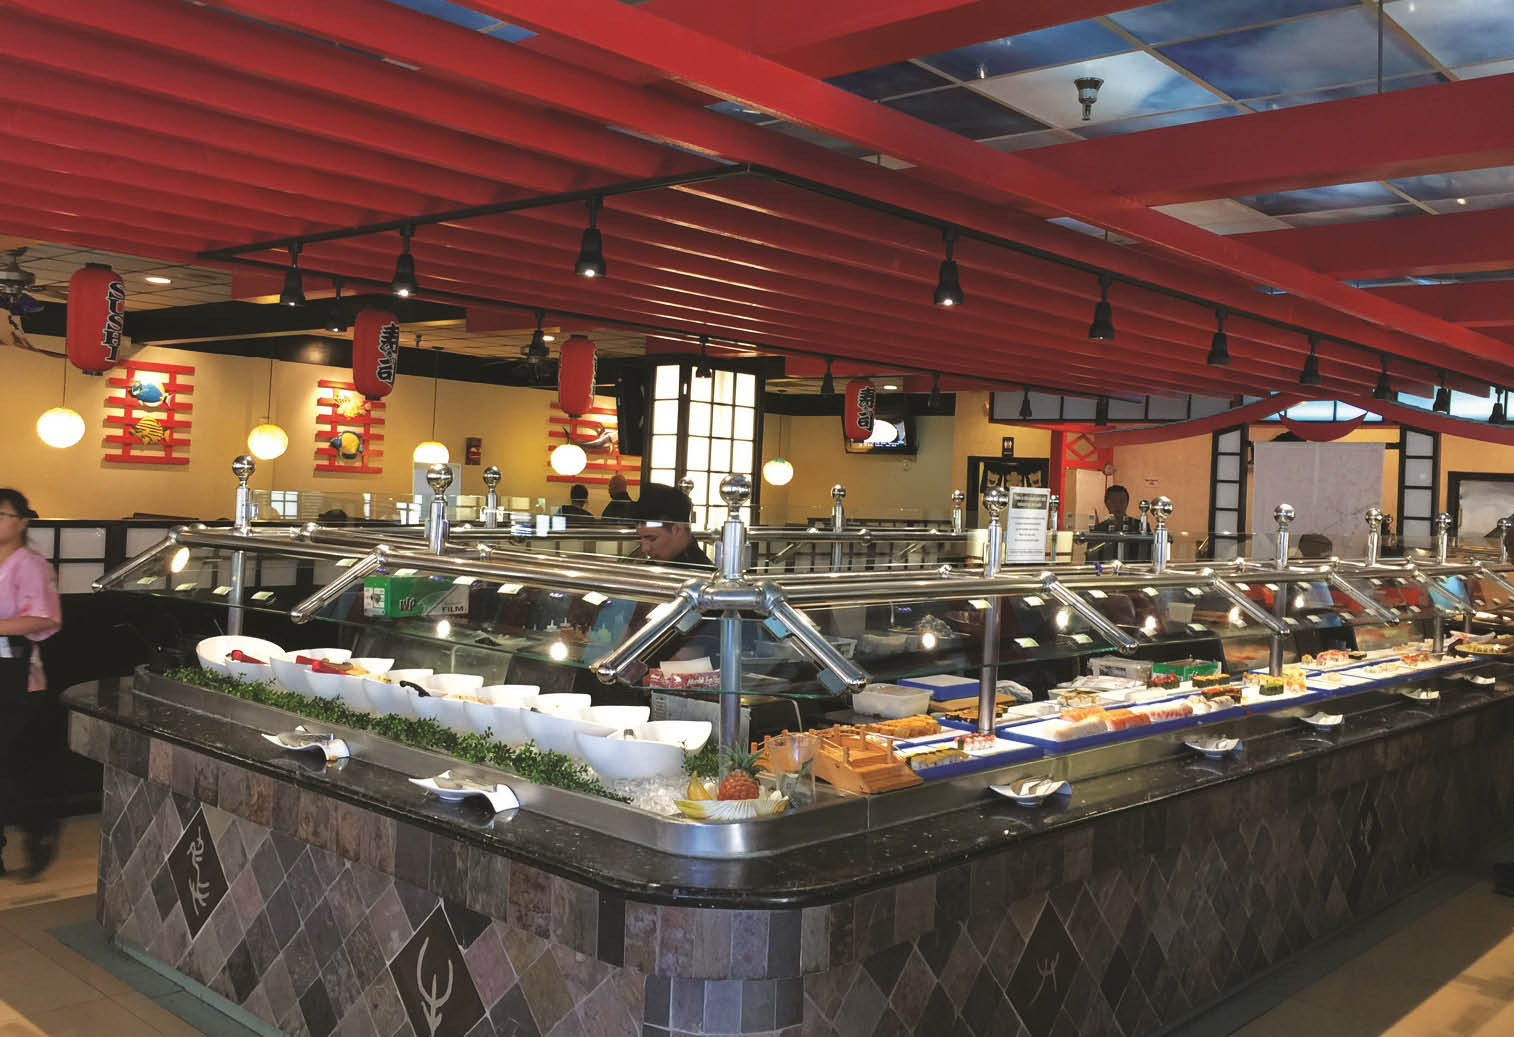 Interior of Shin Ju Japanese Buffet in Coral Springs, FL